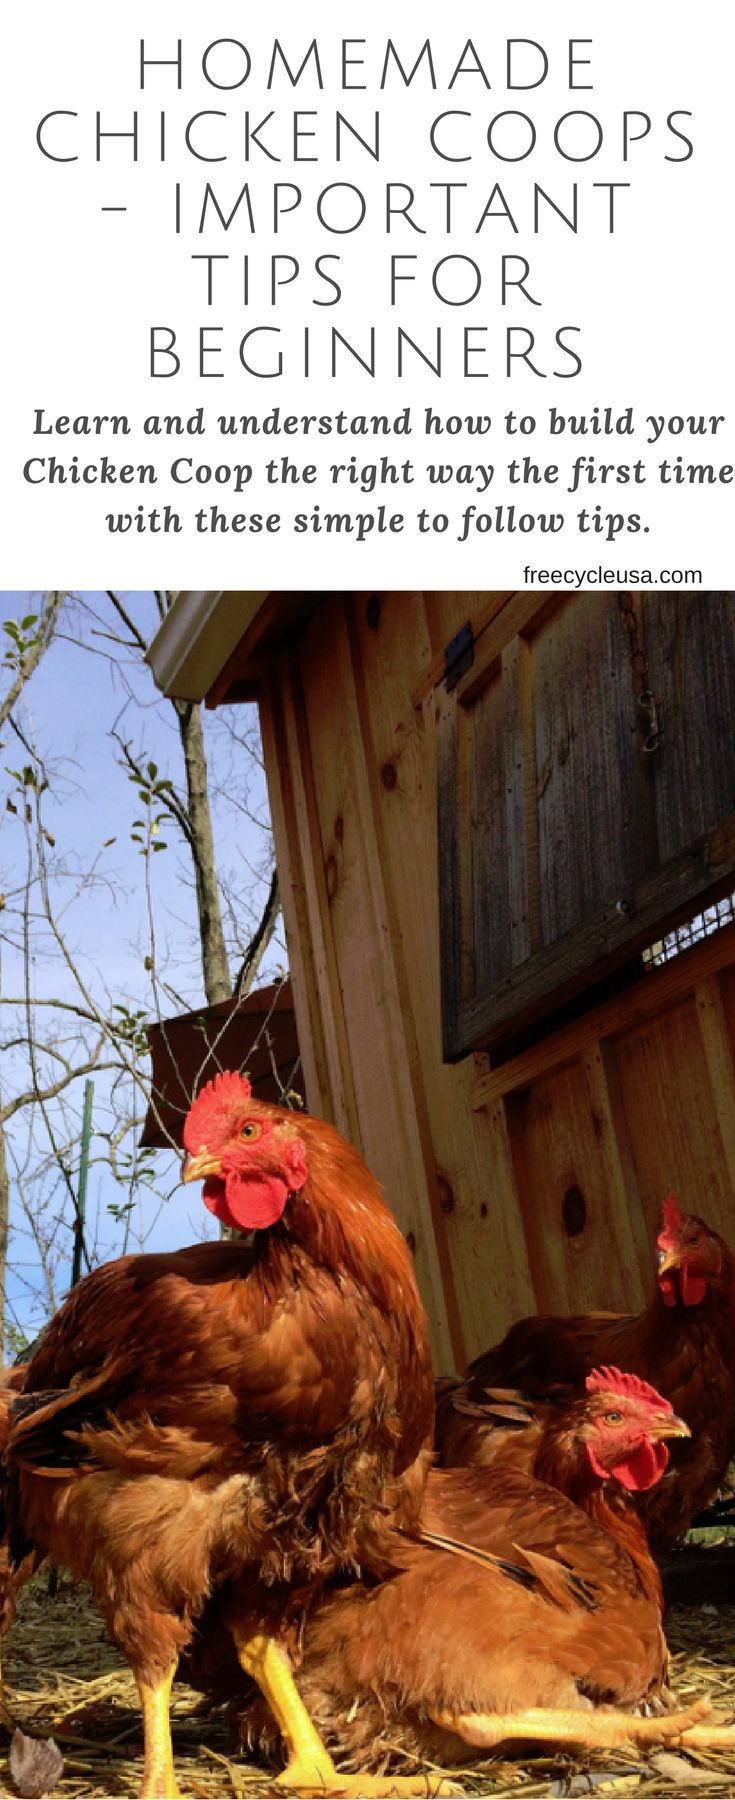 Homemade Chicken Coops - Important Tips For Beginners - http://www.freecycleusa.com/homemade-chicken-coops/